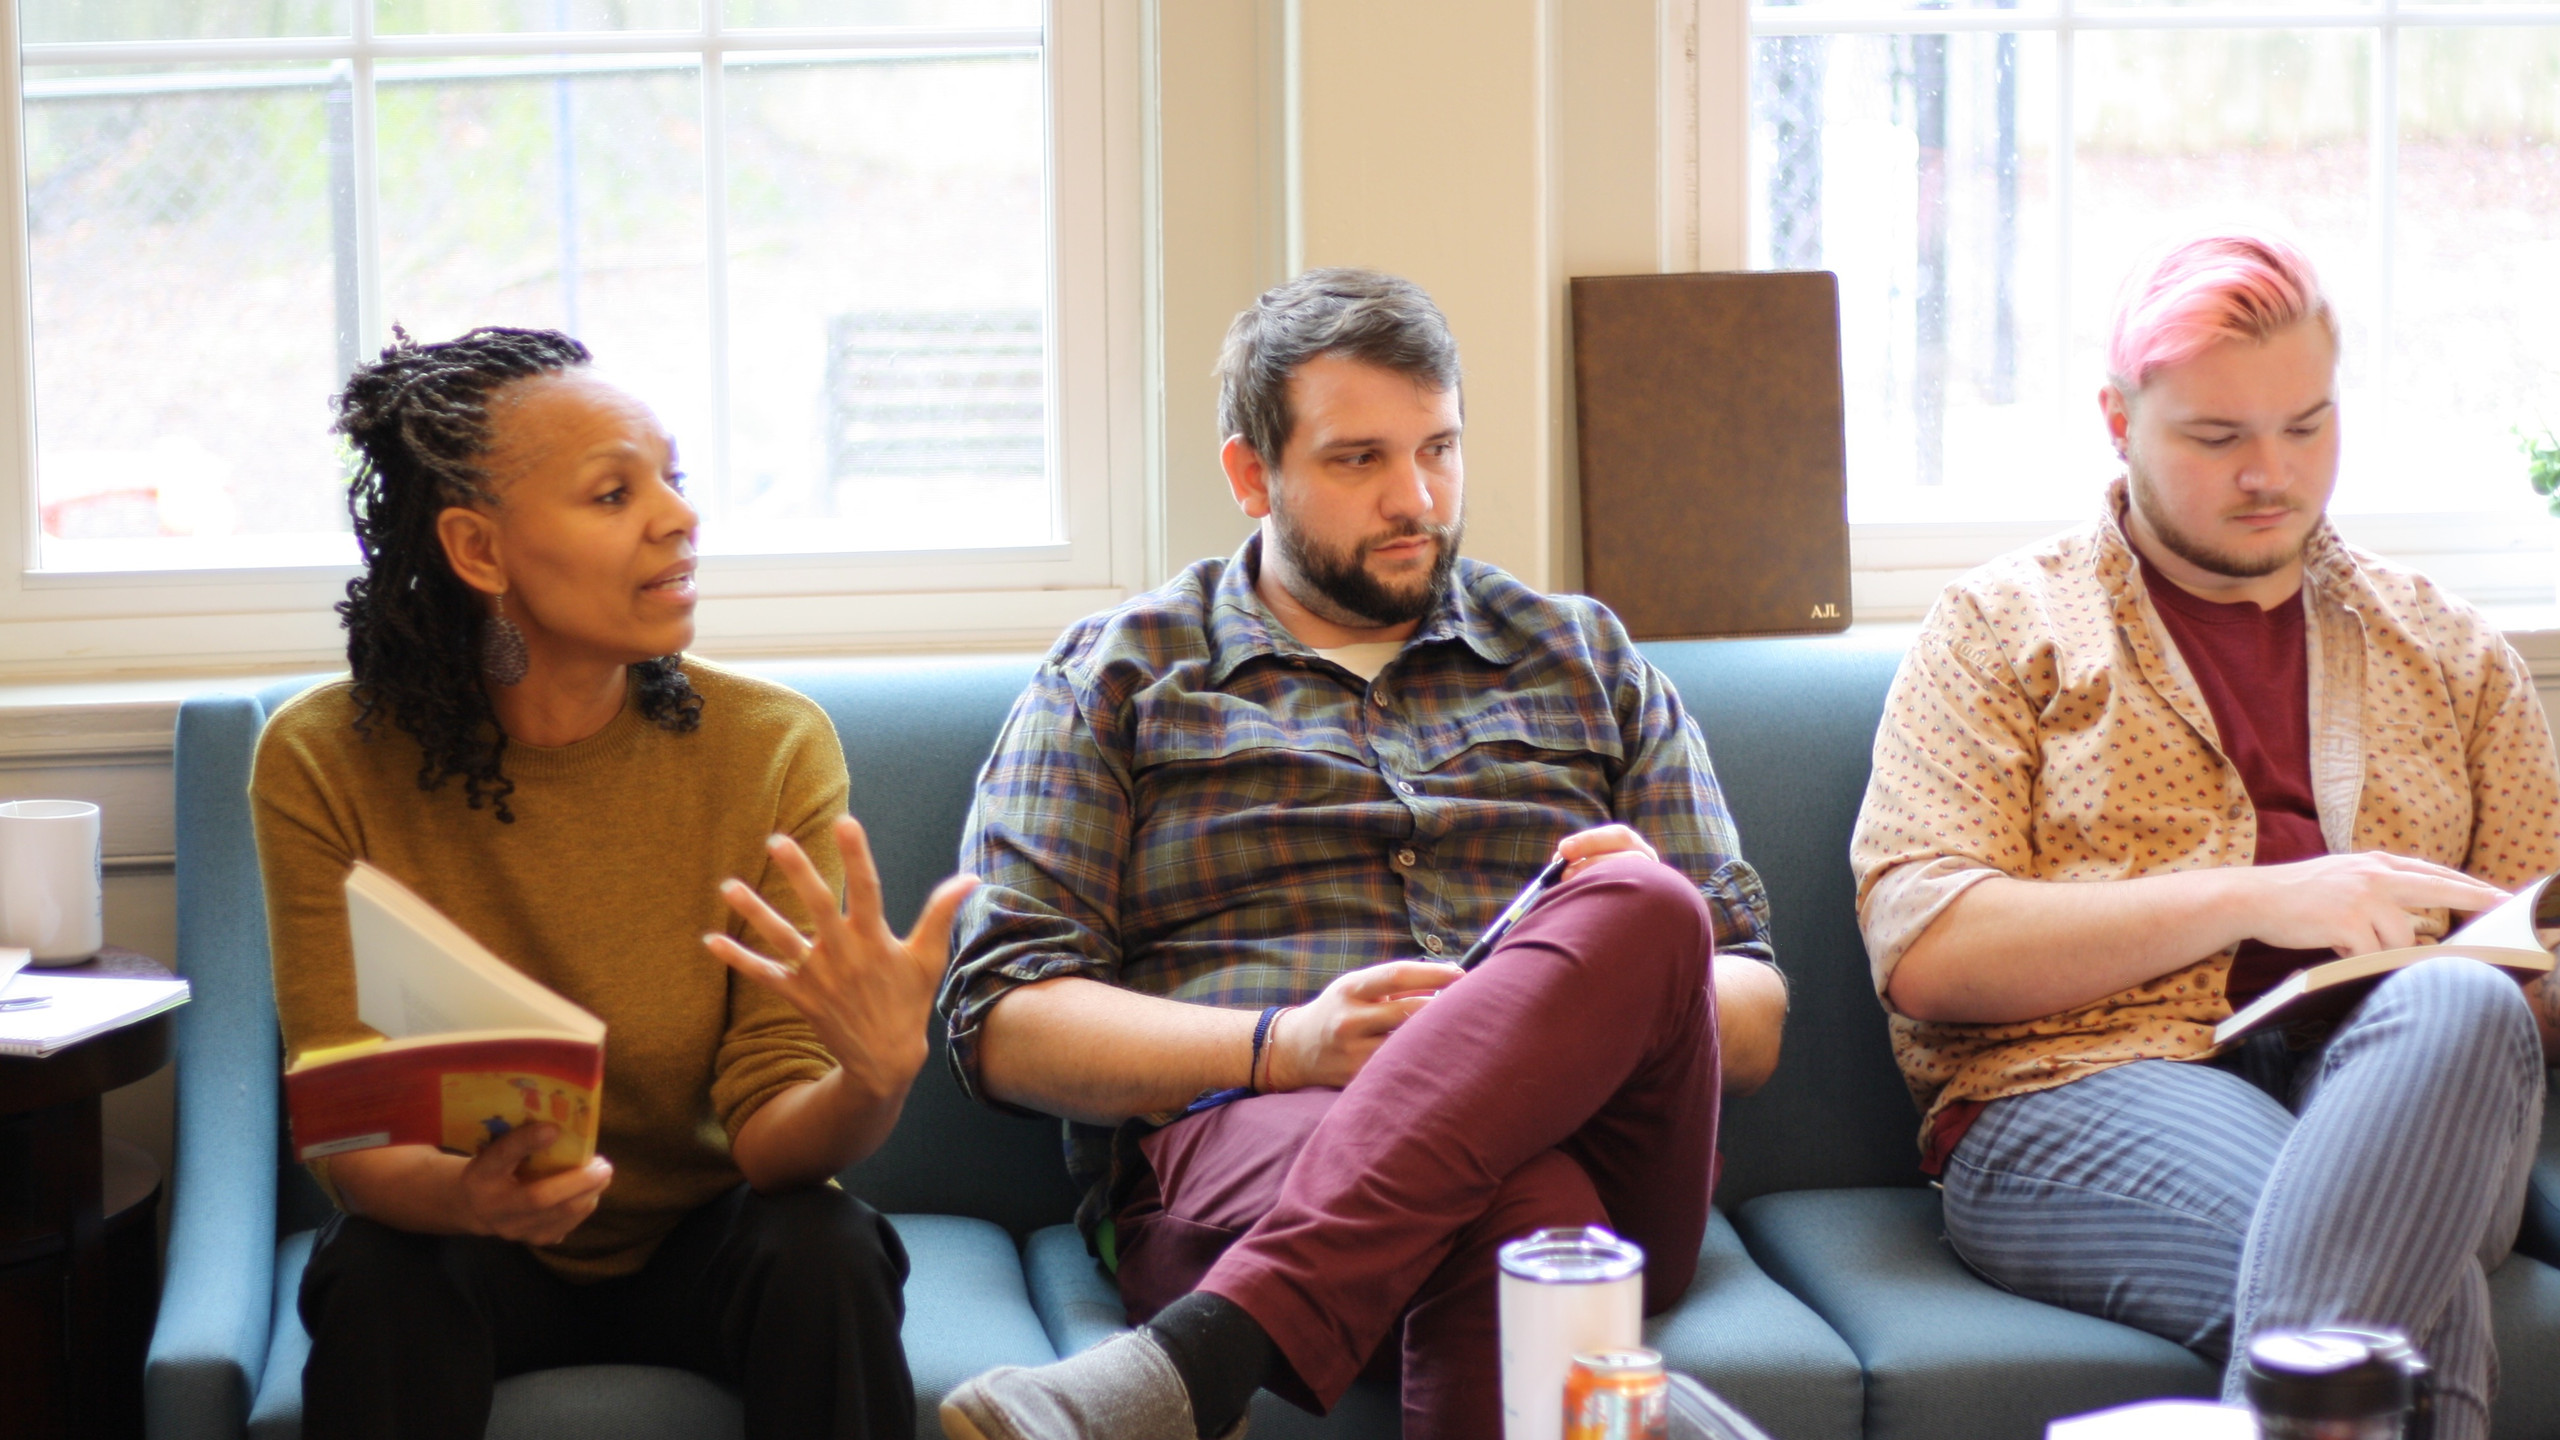 Derona King, Aaron Lichkay from Citizen Advocacy, along with Ben Dell sitting on a couch togeher.